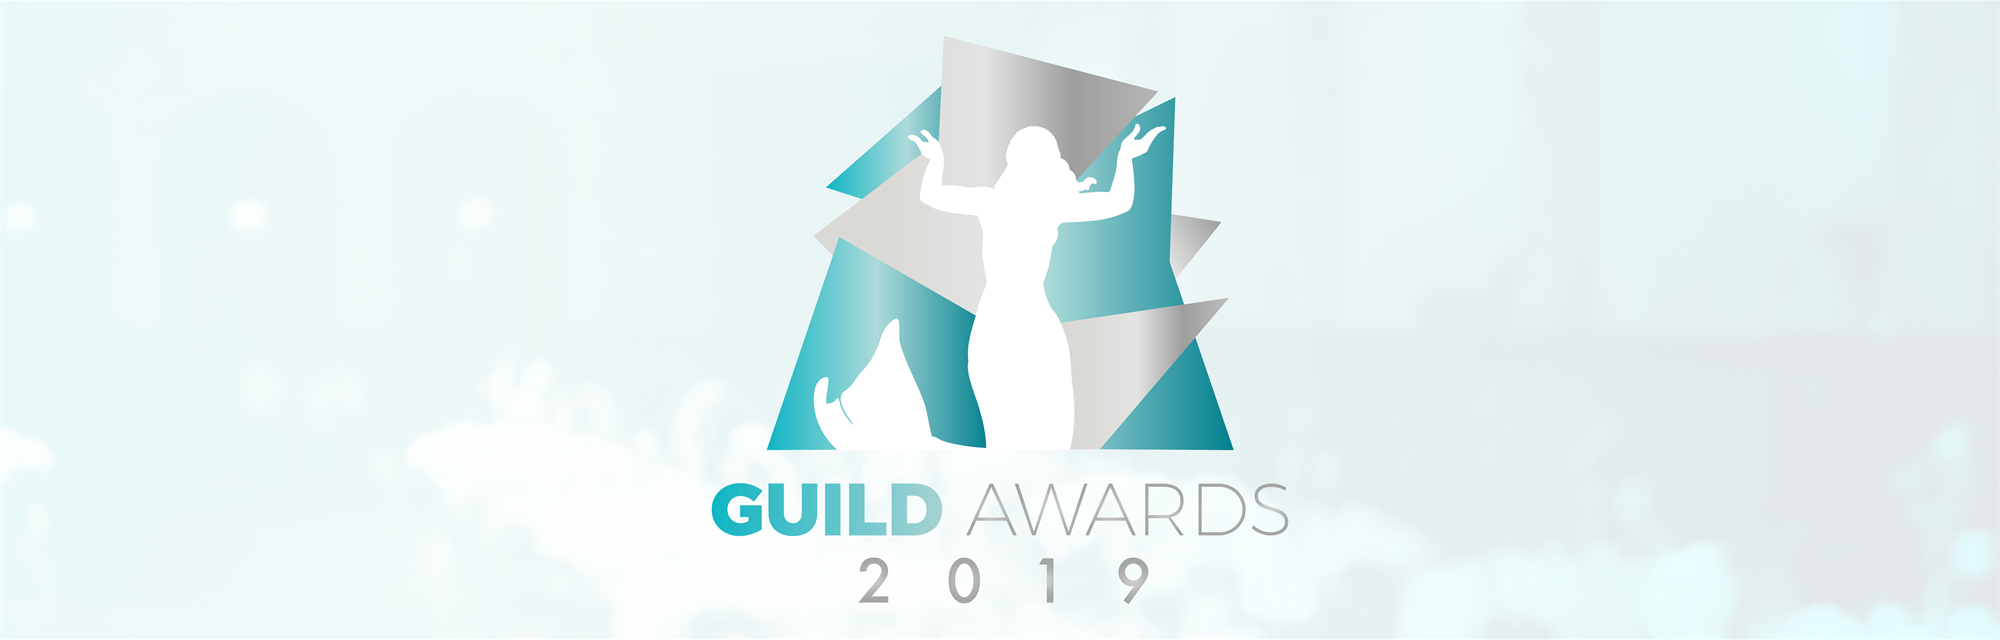 Guild Awards 2019 - Click here for more information